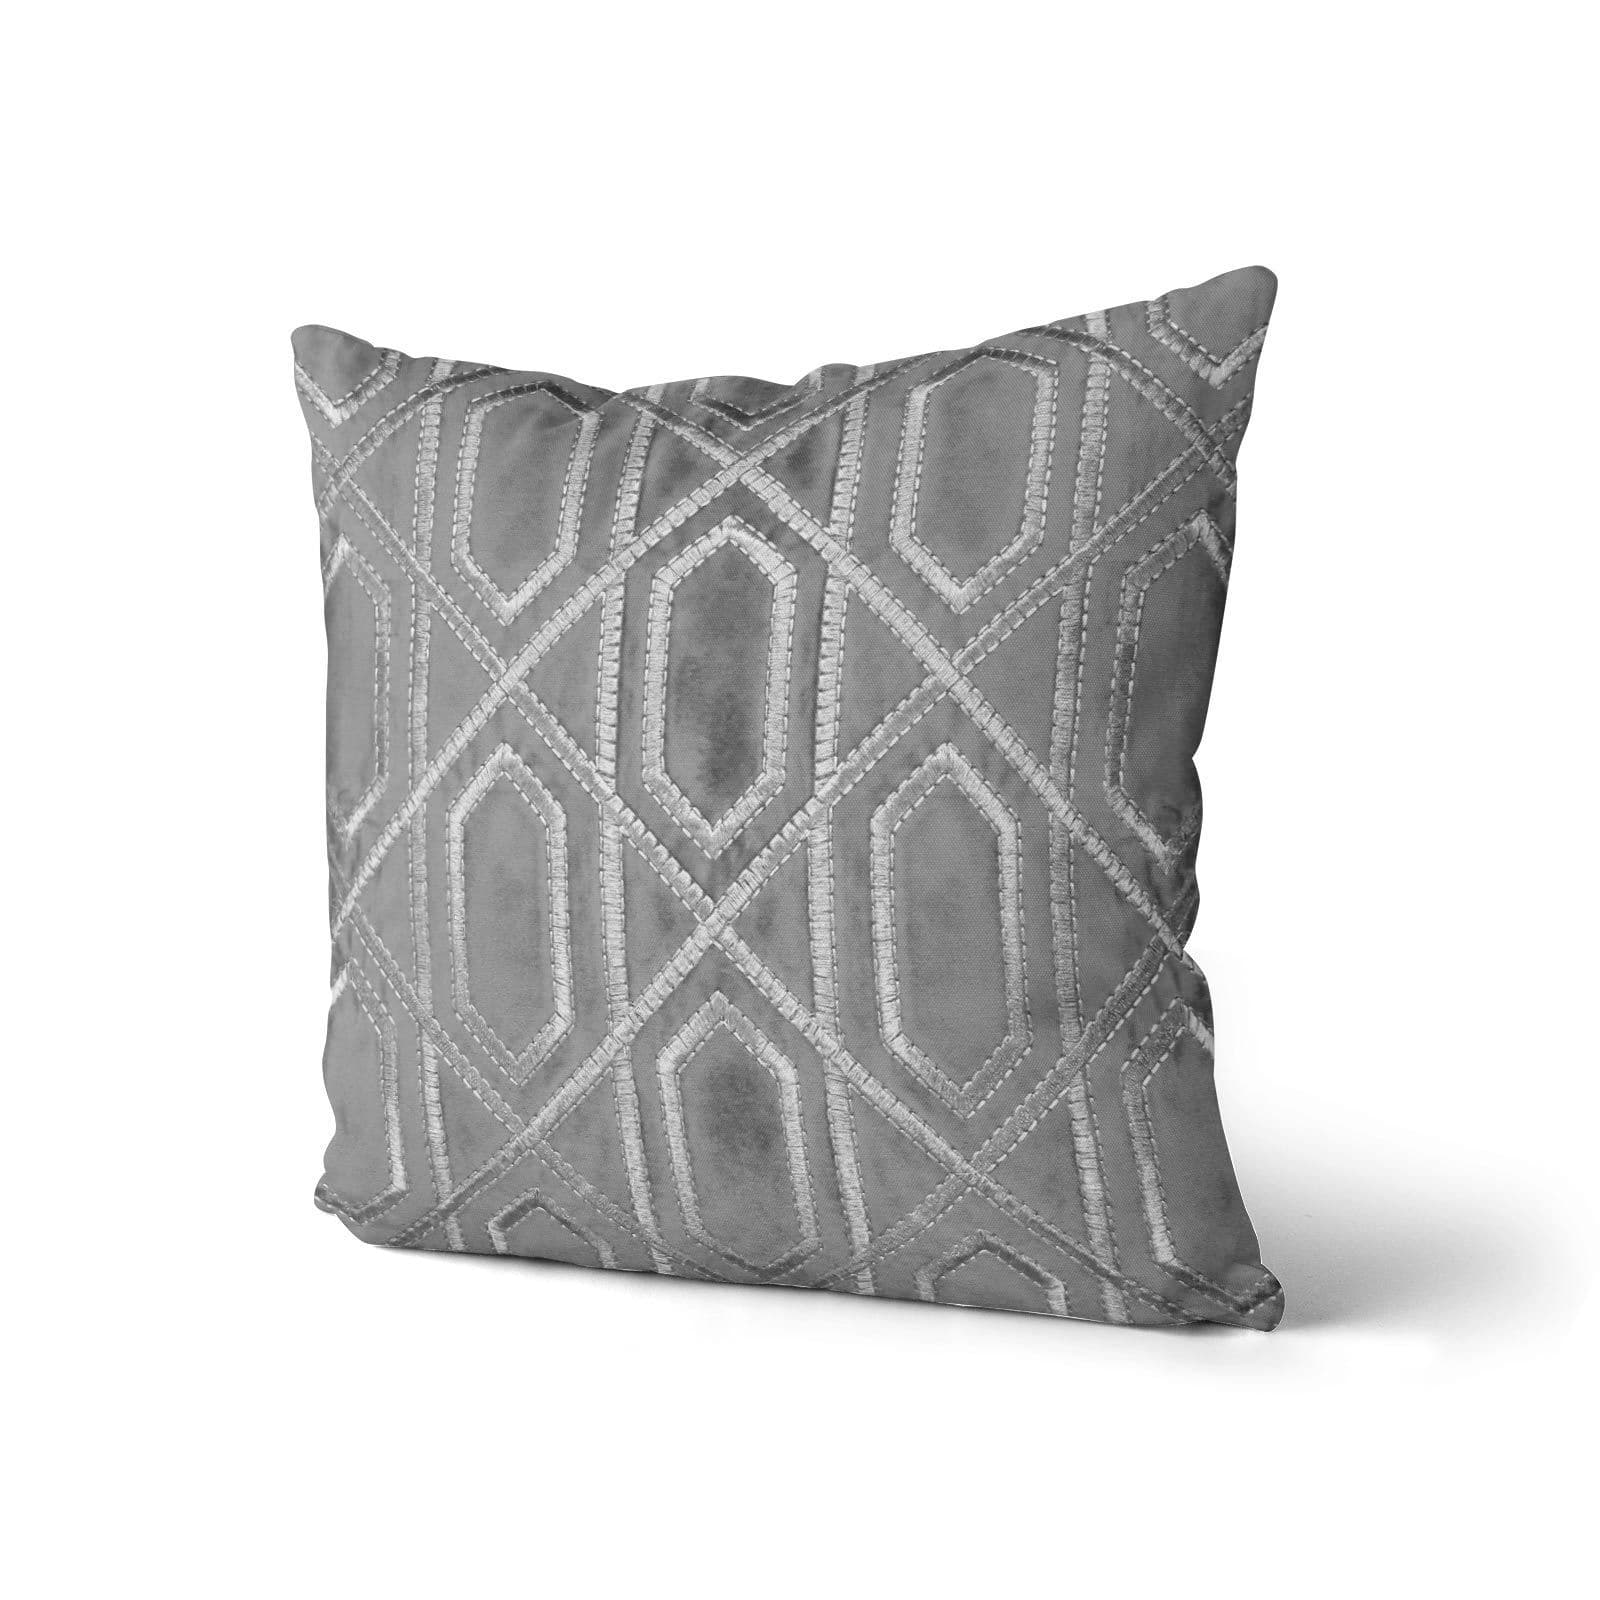 "Chelsea Velvet Cushions Grey 17"" x 17"" -  - Ideal Textiles"